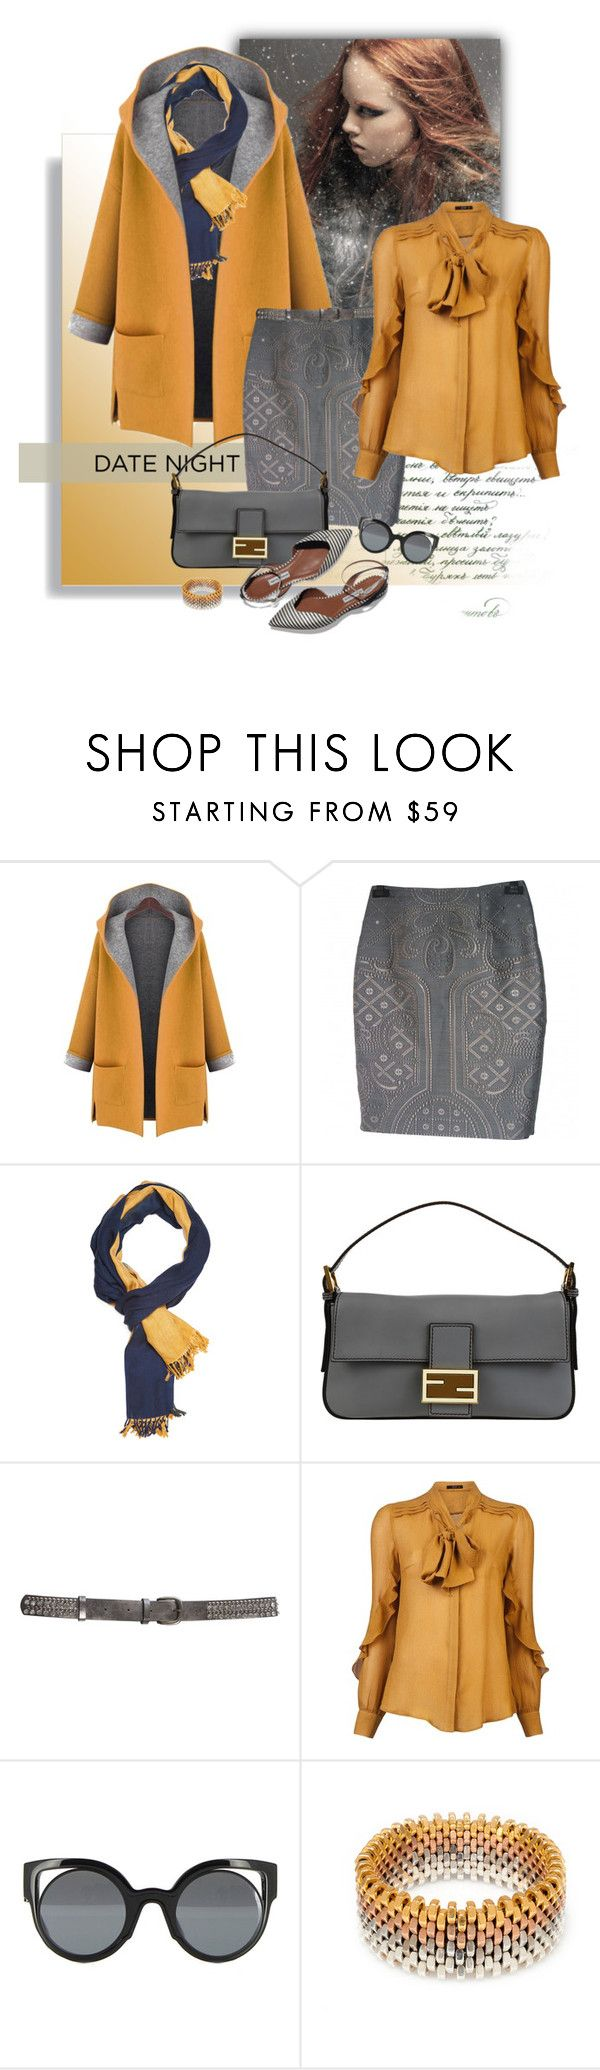 """""""60-Second Style: Last Minute Date"""" by ysmn-pan ❤ liked on Polyvore featuring Prabal Gurung, Slater Zorn, Fendi, Etro, Alice Menter, DateNight, contest, 60secondstyle and LastMinuteDate"""